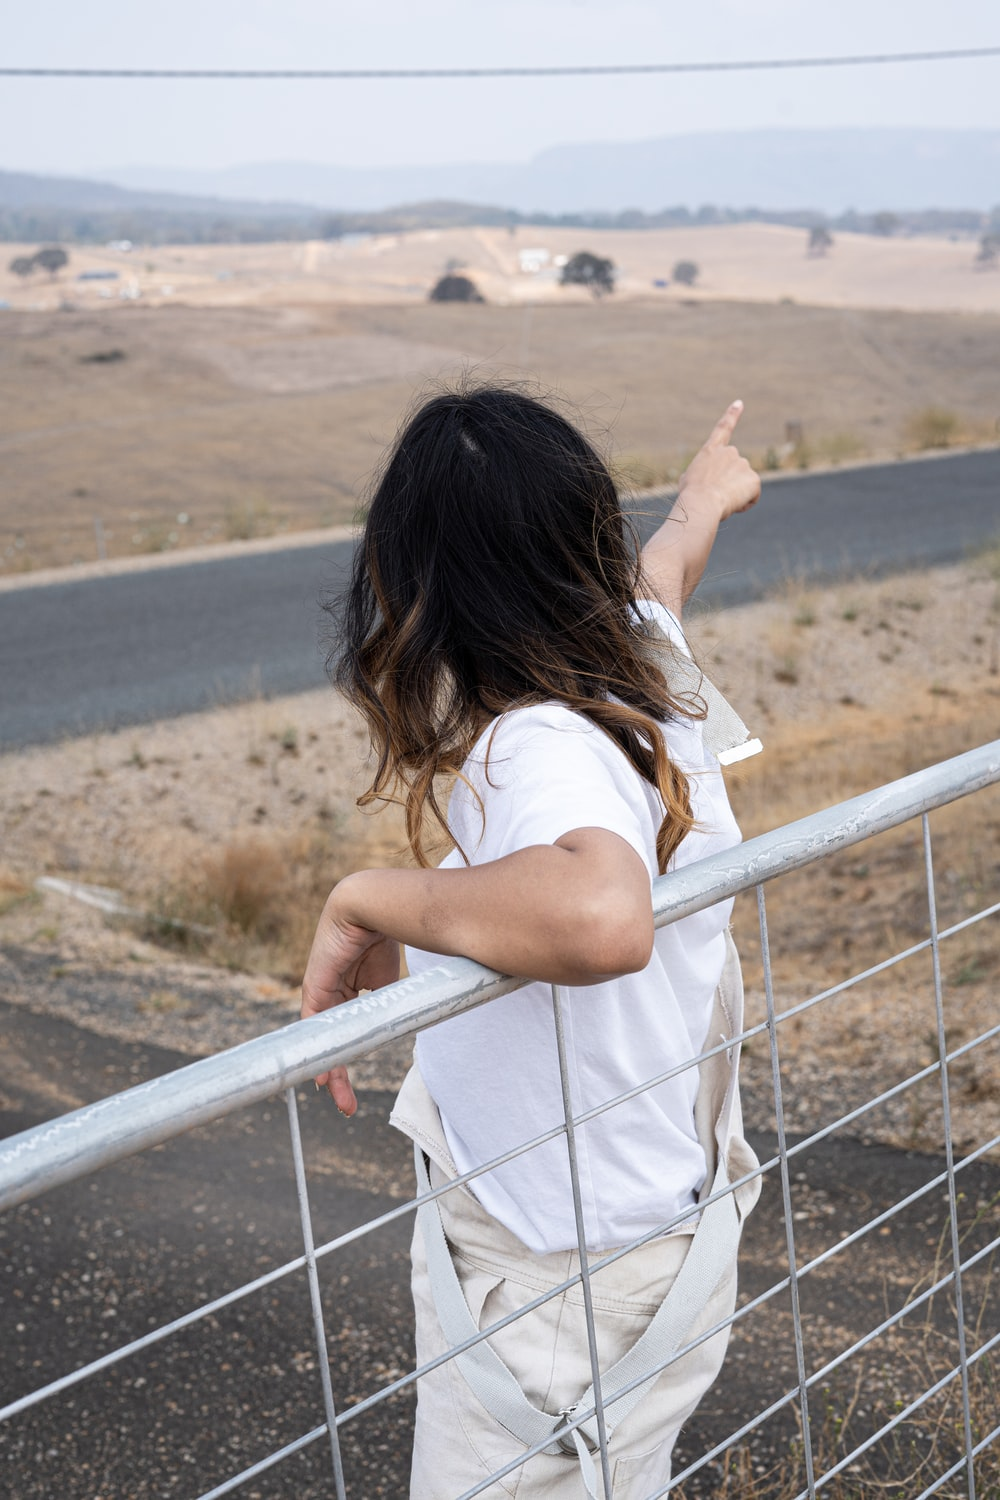 woman points her finger to the east side of the road